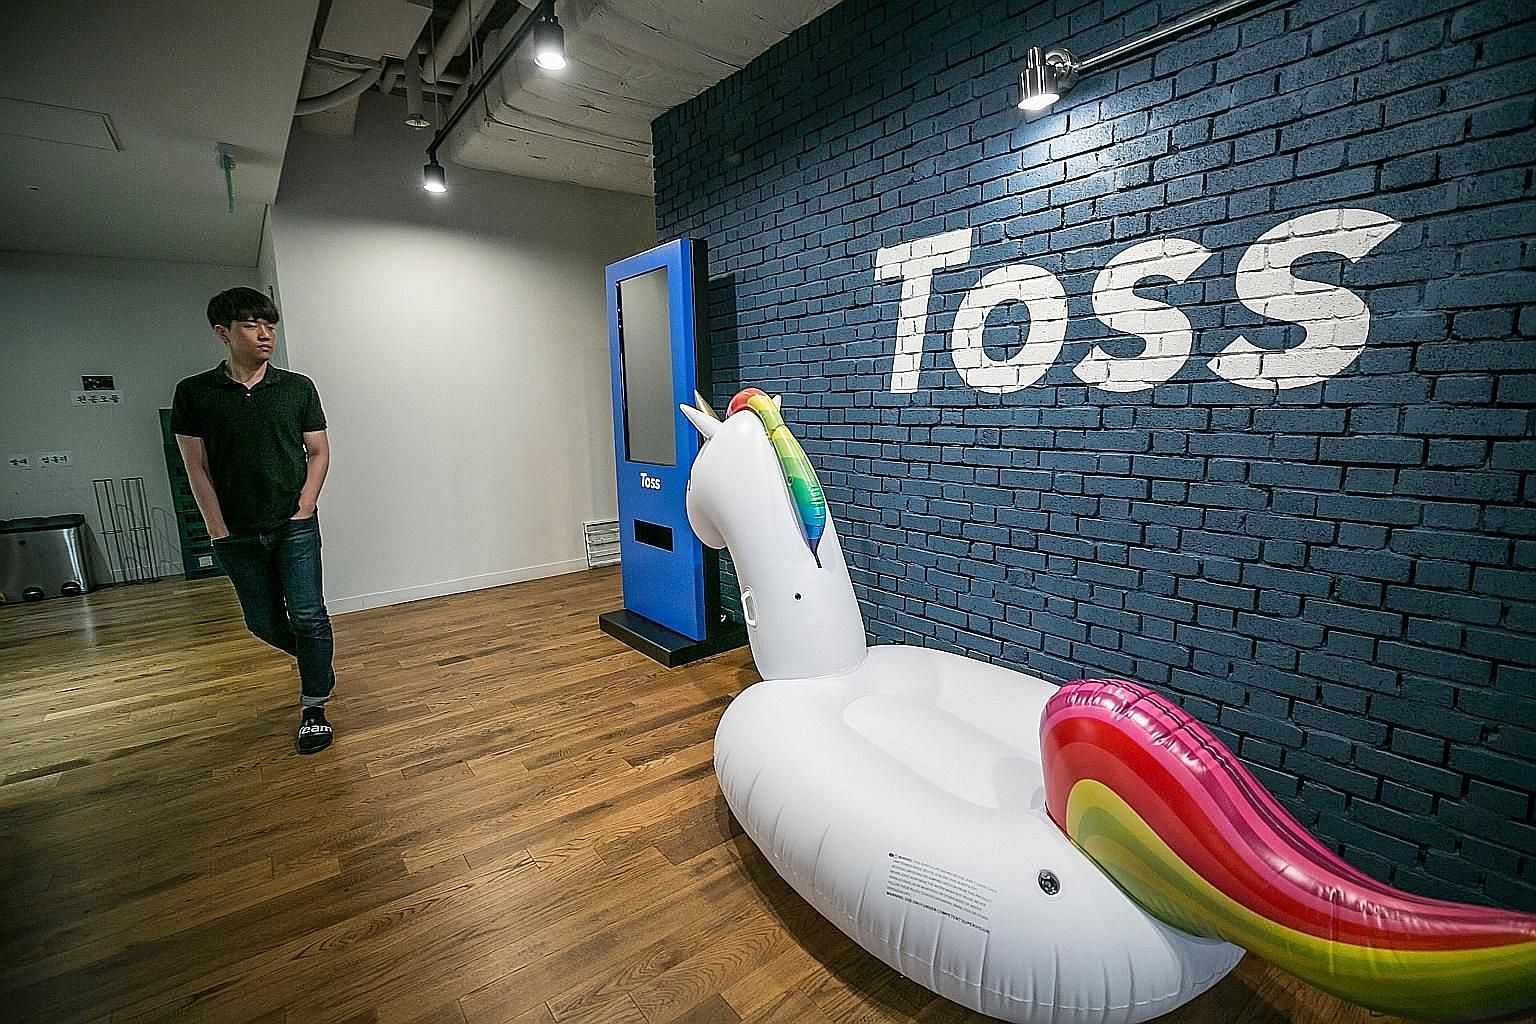 Launched as a peer-to-peer payment app in 2015, Toss expanded into a plethora of financial services from credit scoring to insurance, and now wants to become a securities broker.